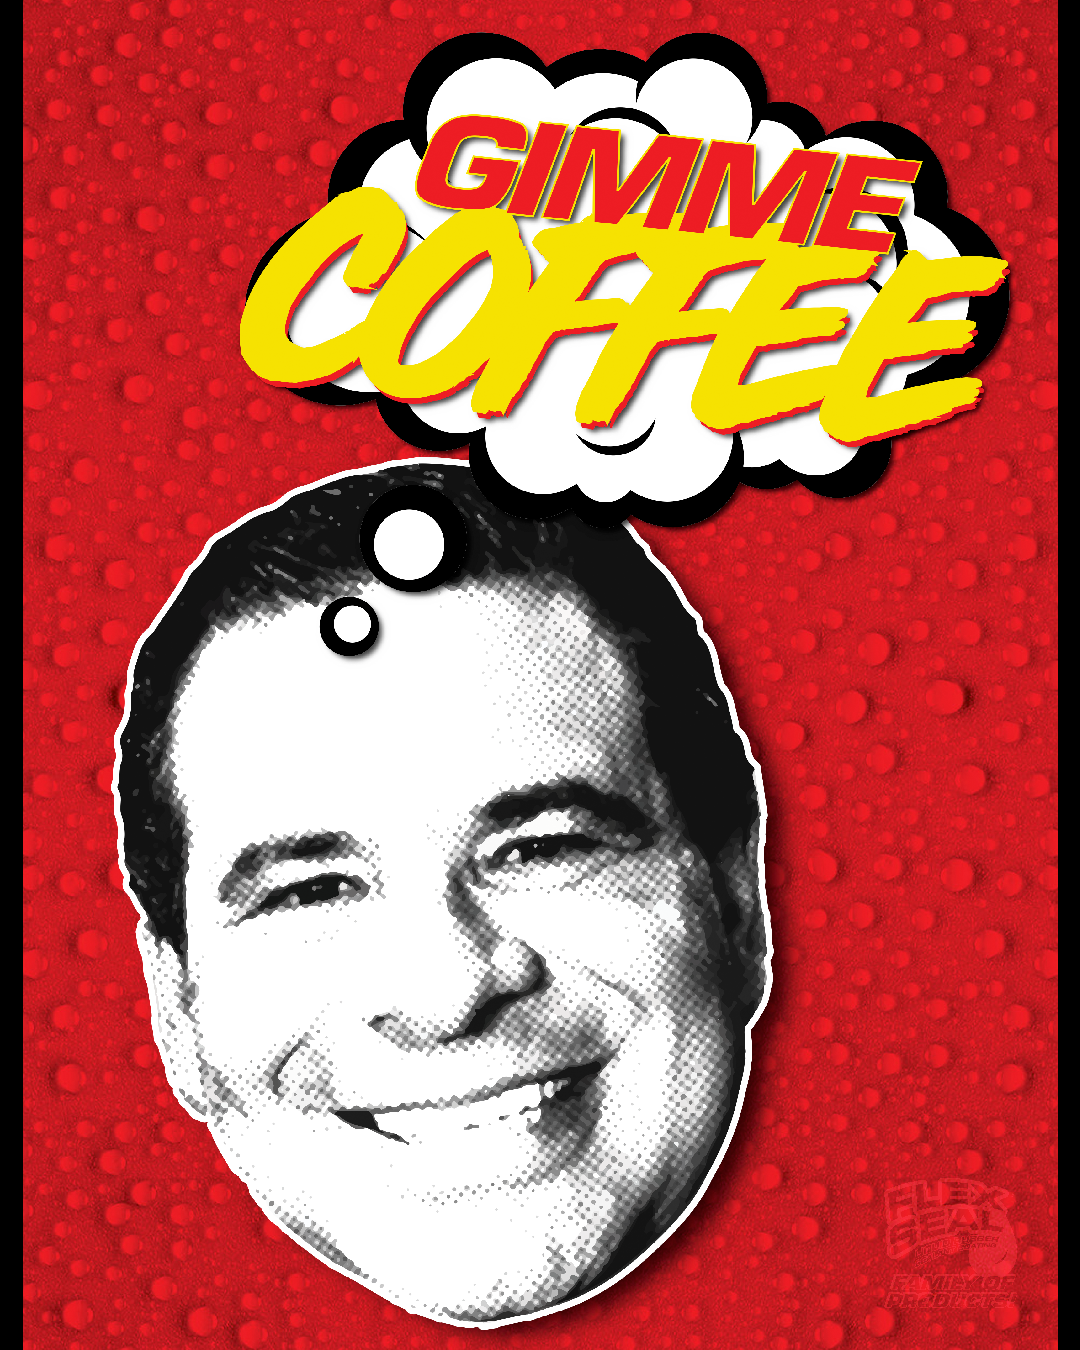 Who Else Loves Coffee We Know Phil Swift Does Philswift Flexon Coffeelovers Starbucks Dunkin Phil Swift Phil Coffee Lover